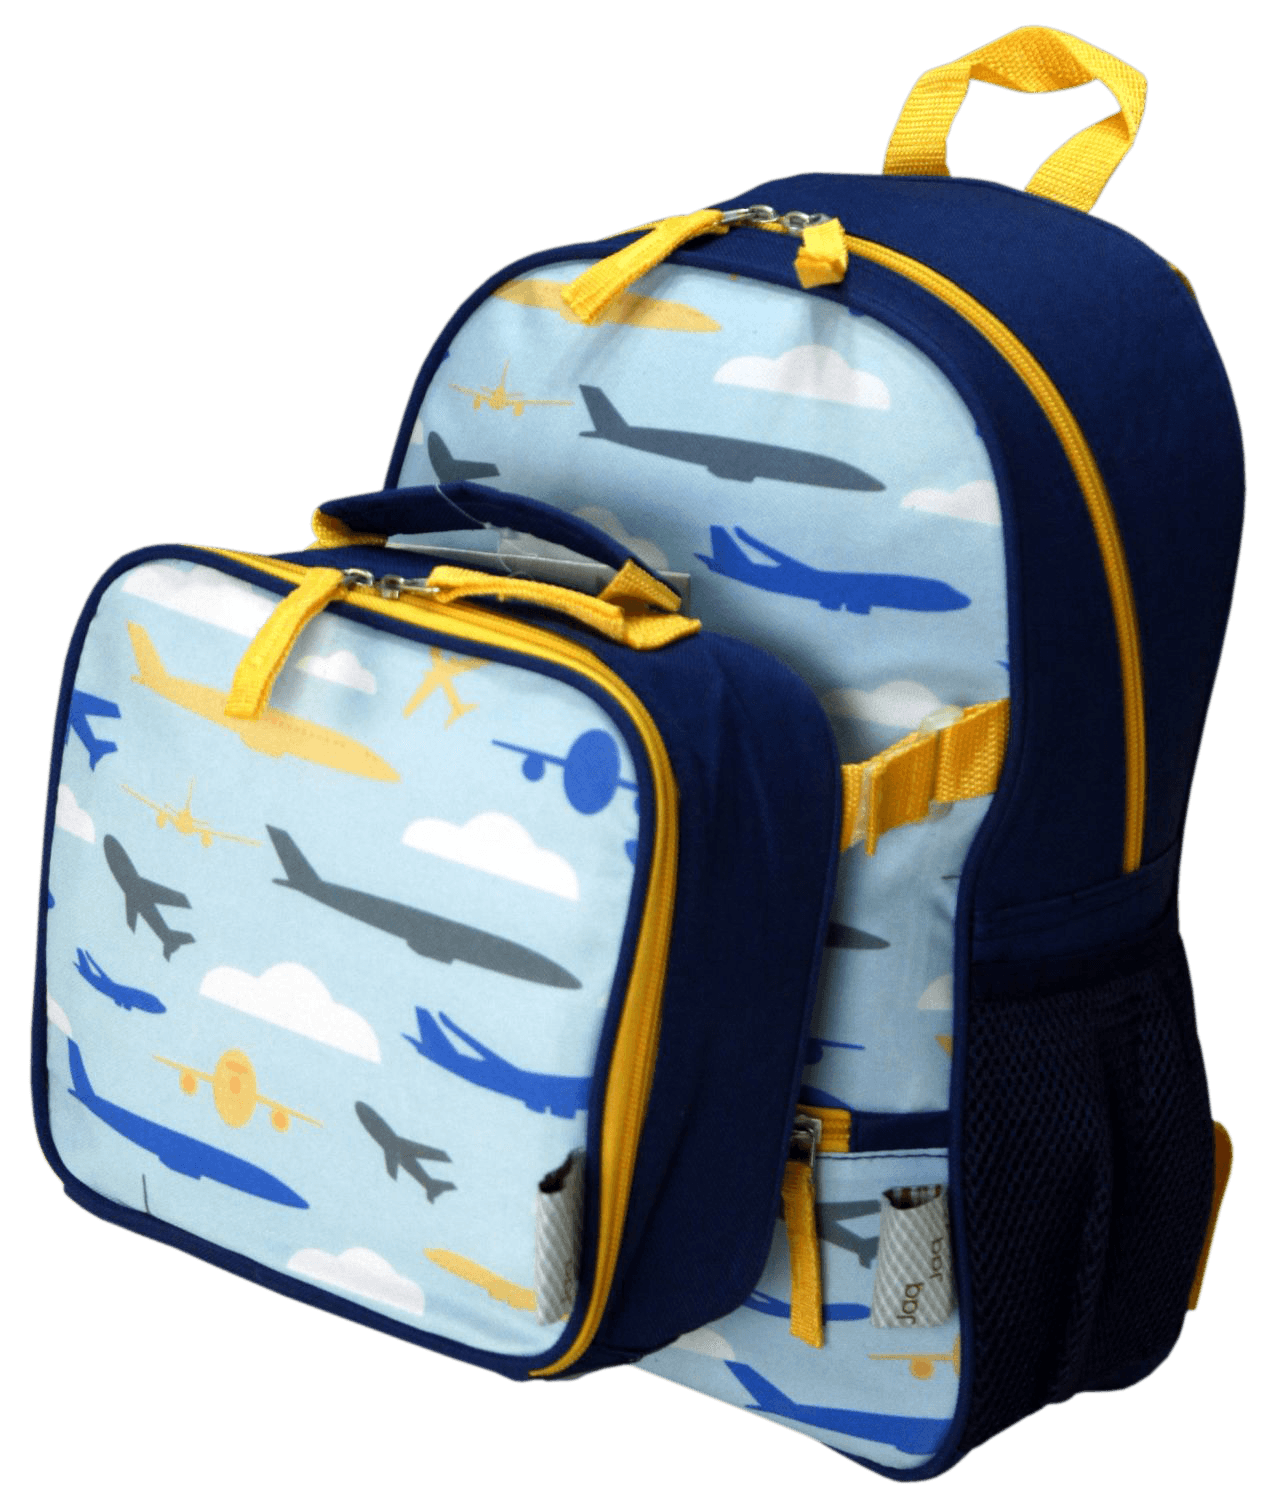 Backpack and box png. Lunchbox clipart lunch bag